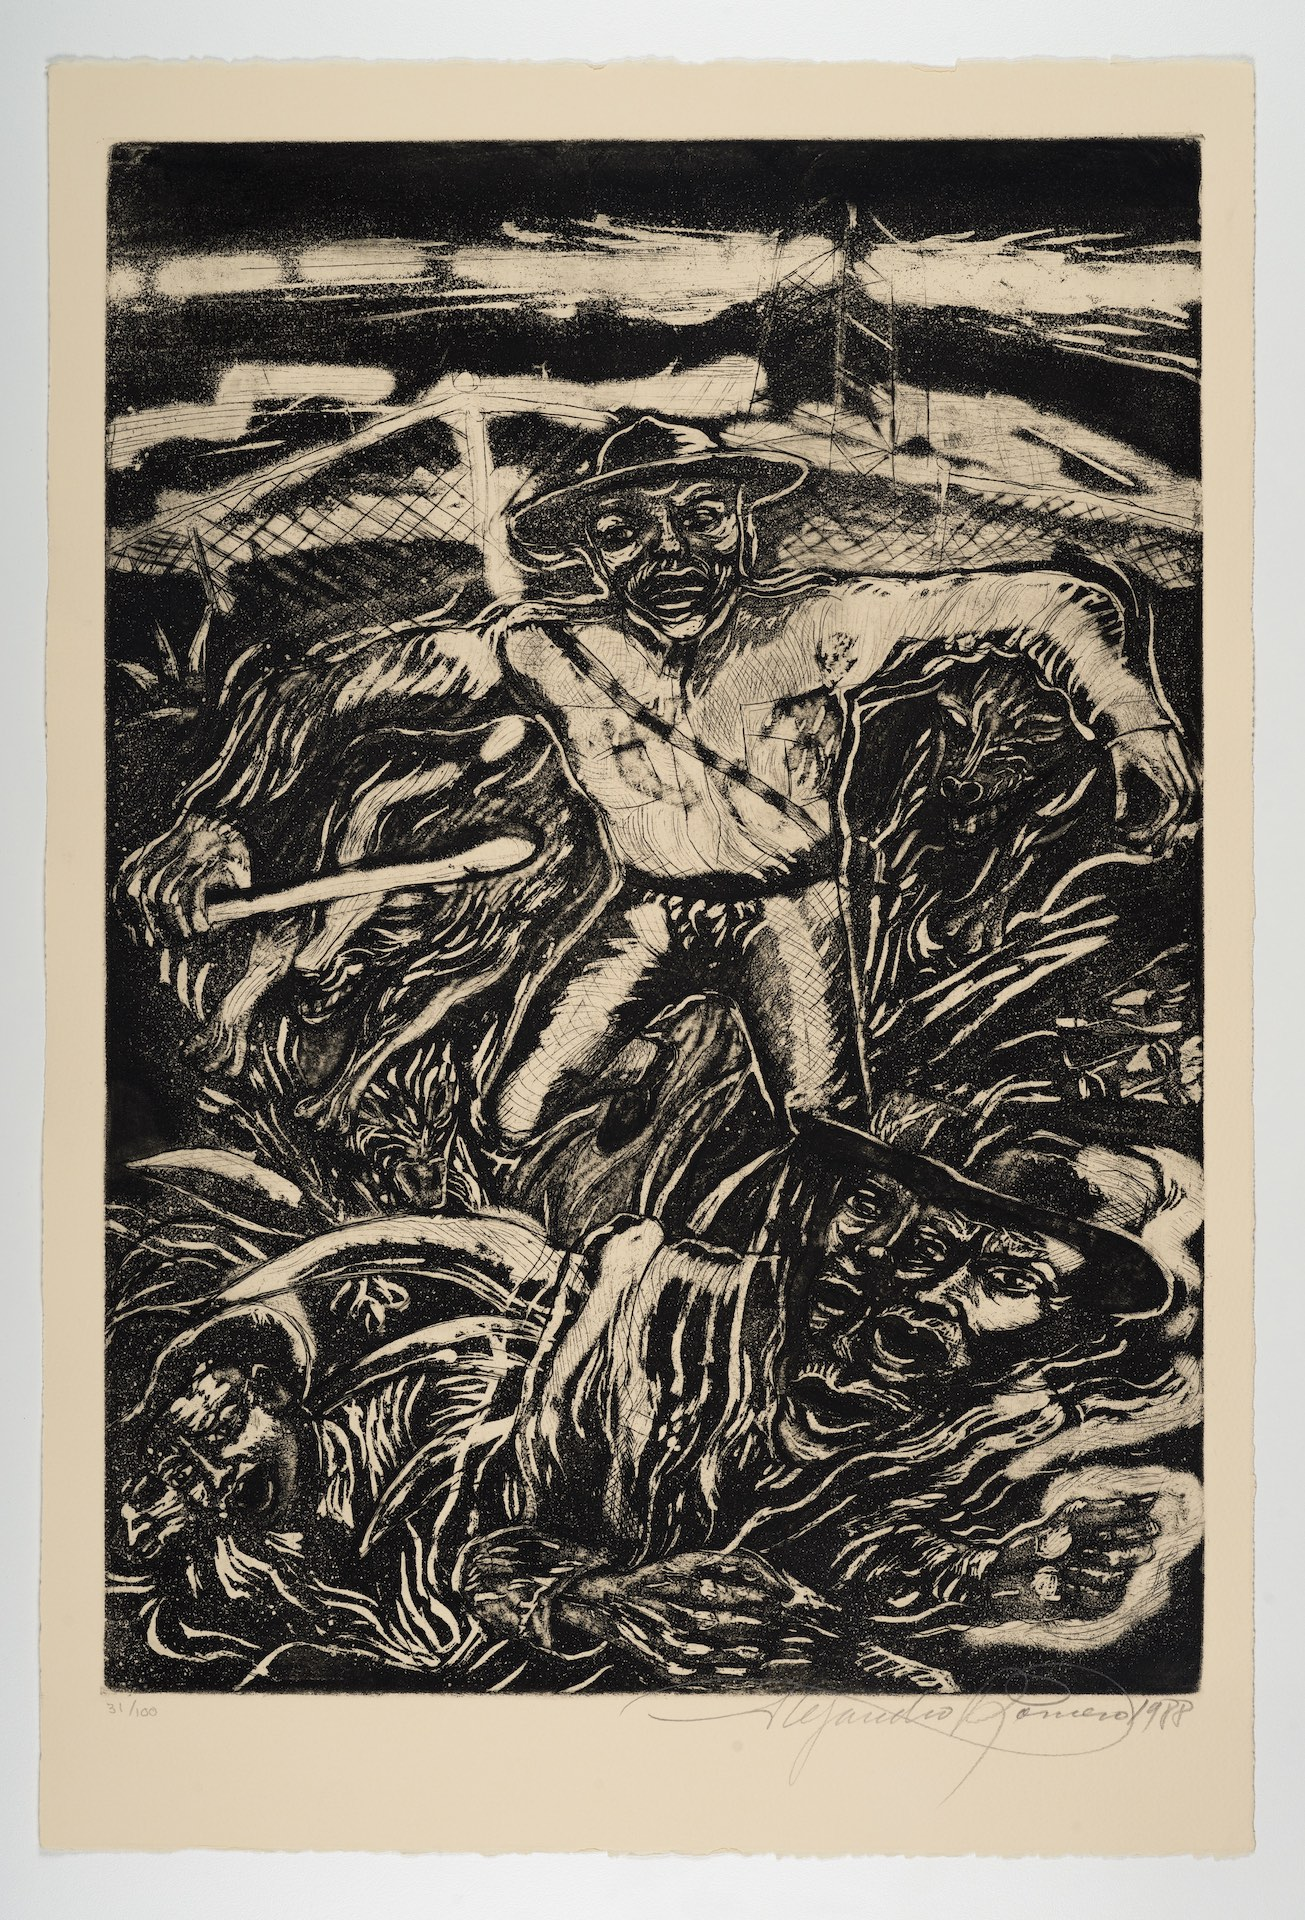 Alejandro Romero, Magueyes [Magueys], from The New Immigration series, 1988, aquatint with etching and roulette, 22 1/16 x 14 15/16 in. (56 x 37.9 cm), featuring a figure who appears to be some type of border authority accompanied by two dogs confronting two figures hidden in the darkness, Blanton Museum of Art, The University of Texas at Austin, Gift of Gilberto Cardenas, 2017